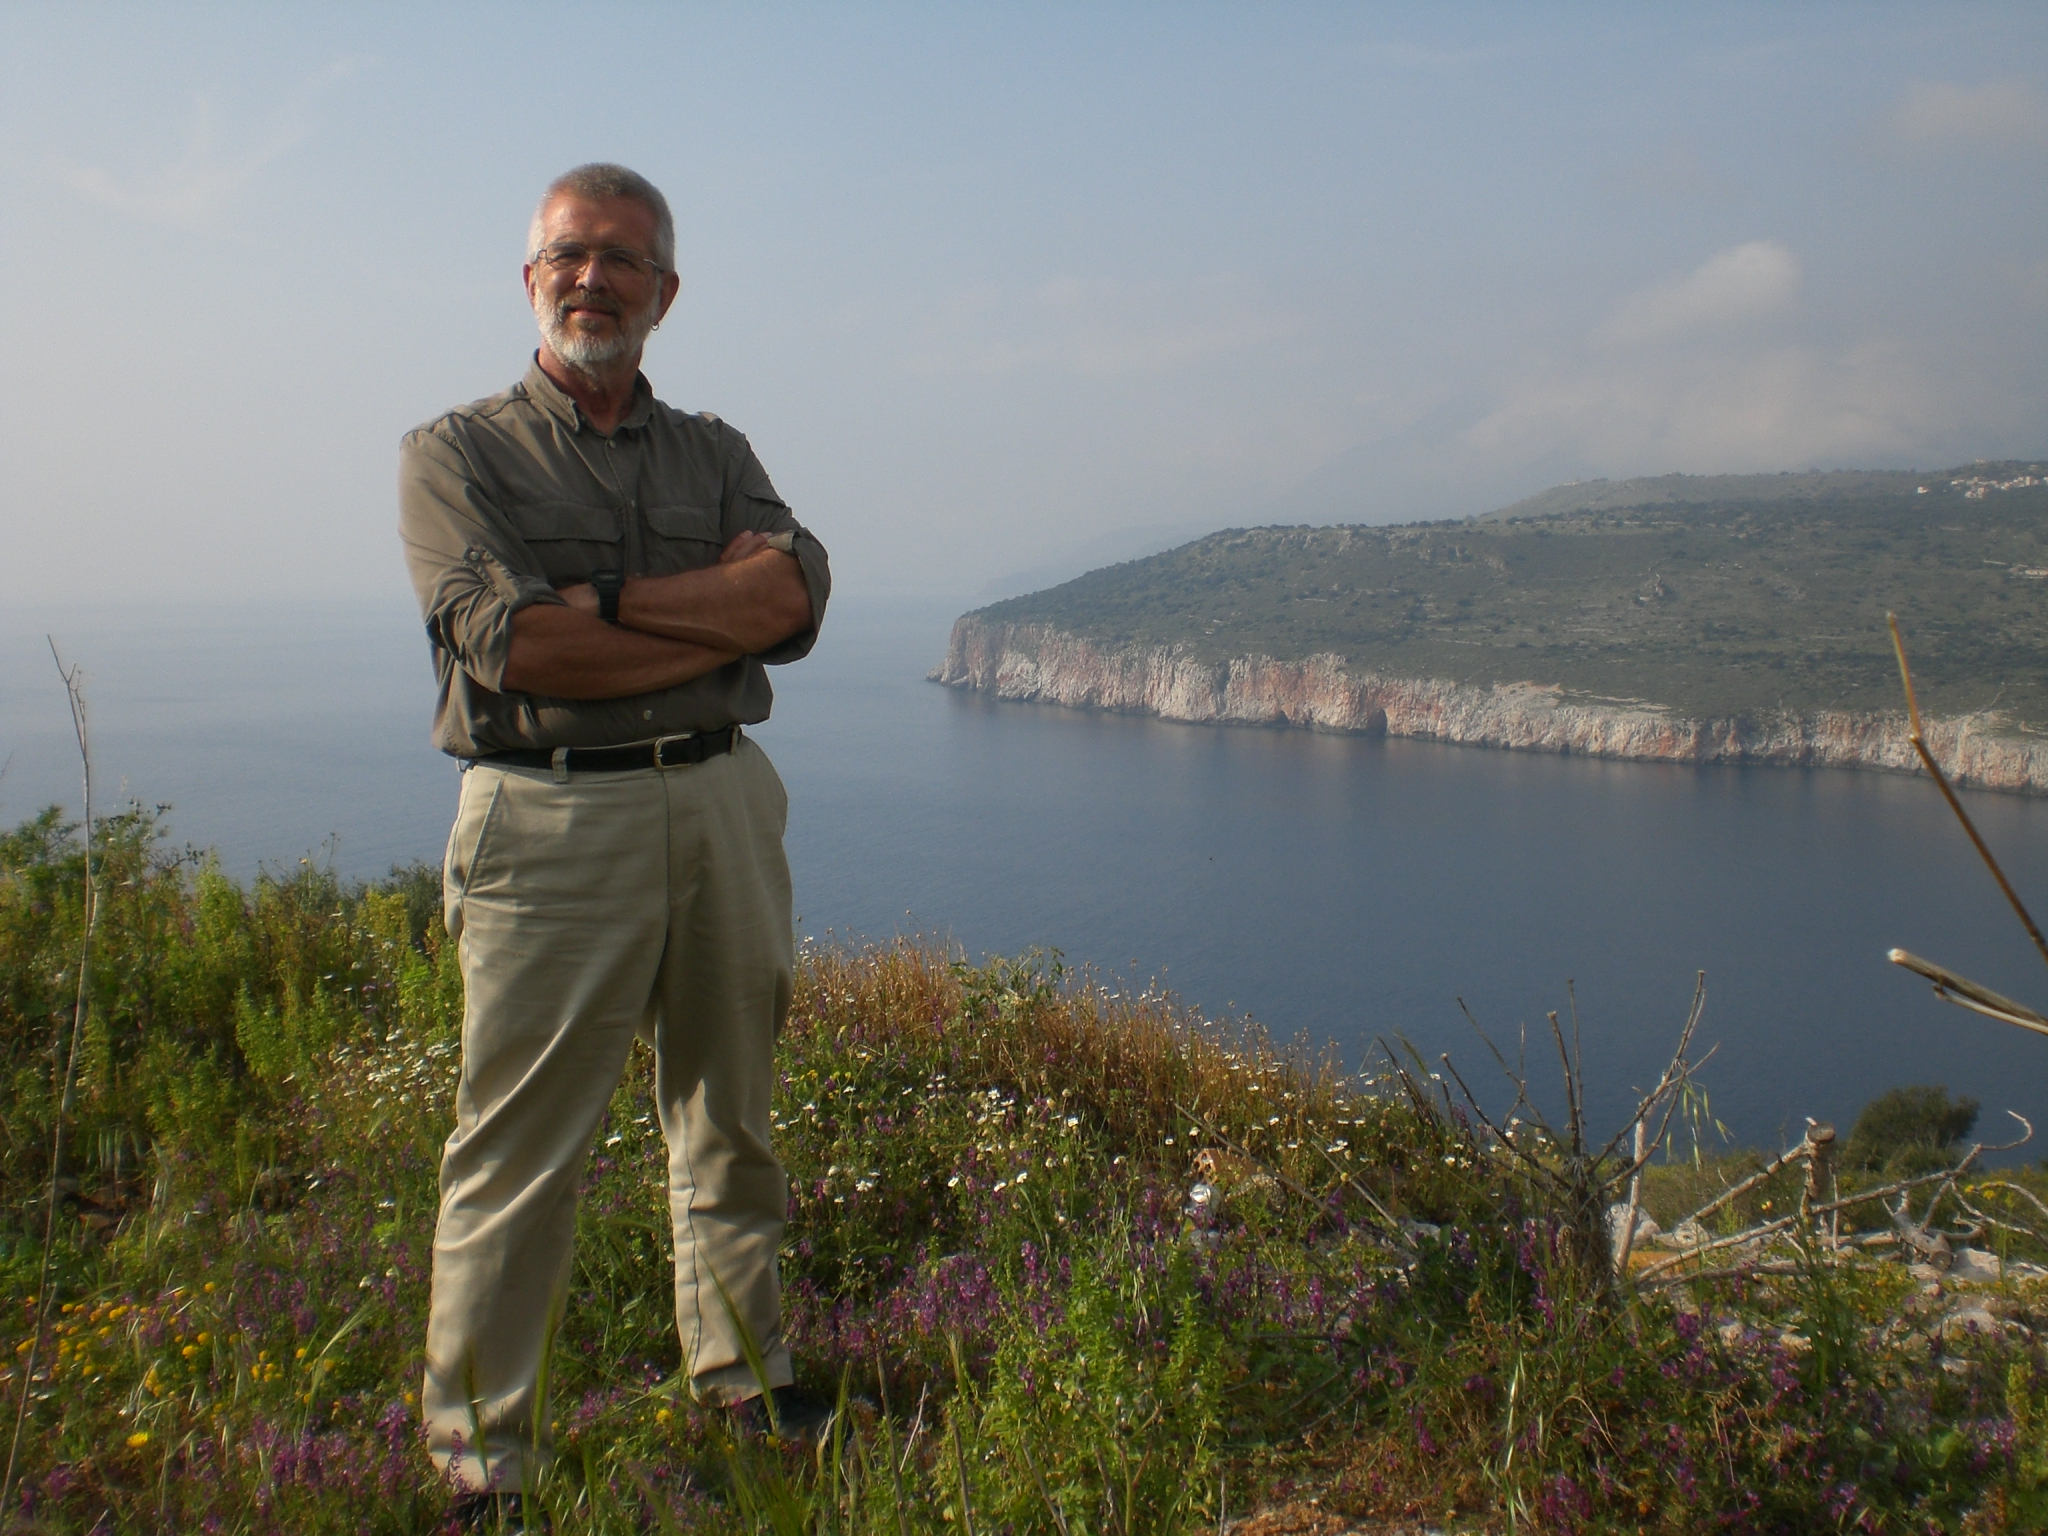 The late professor Marv Meyer during a 2011 trip to Greece. A memorial is planned September 23.